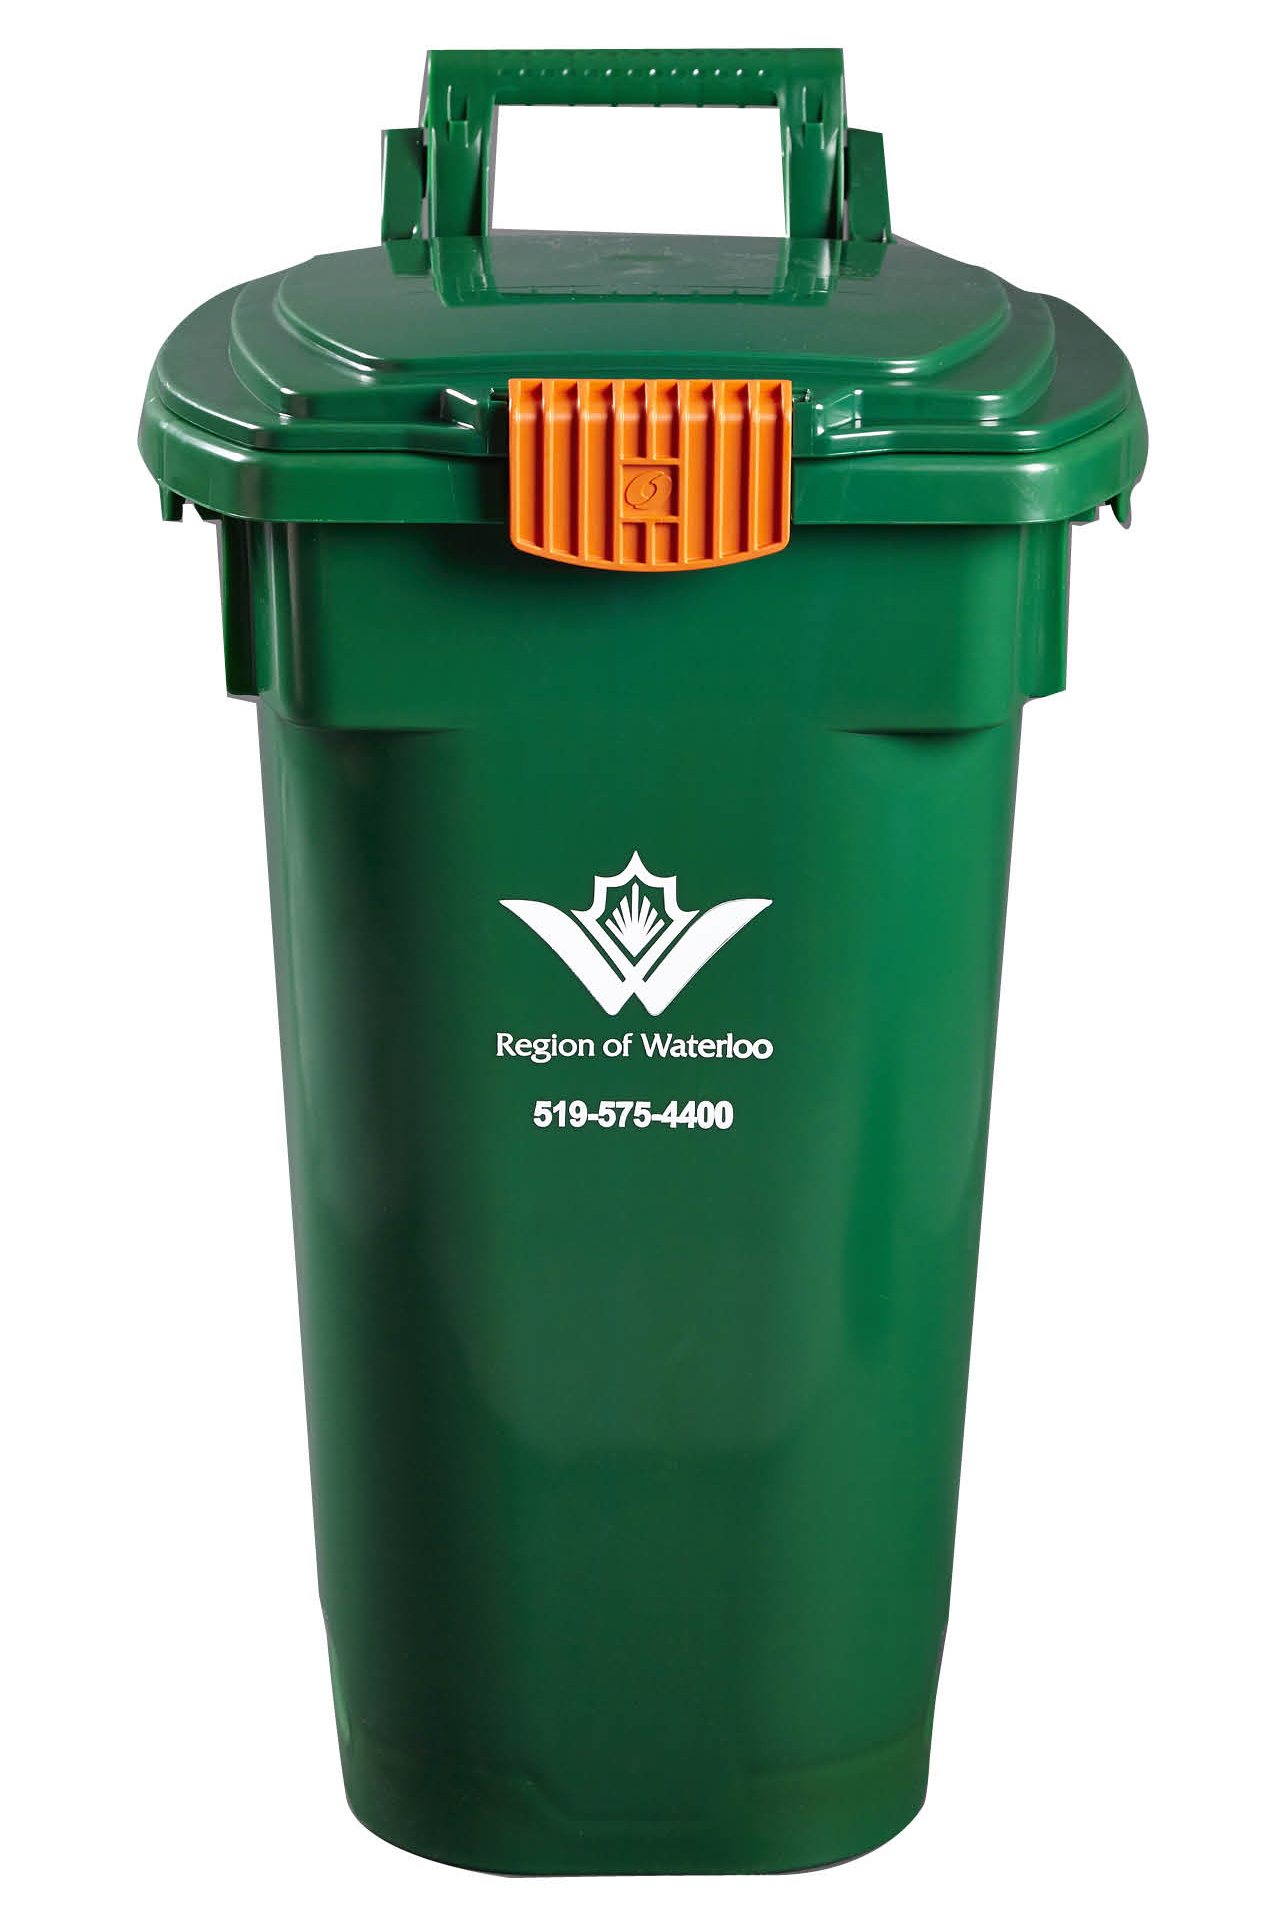 Approved green bin